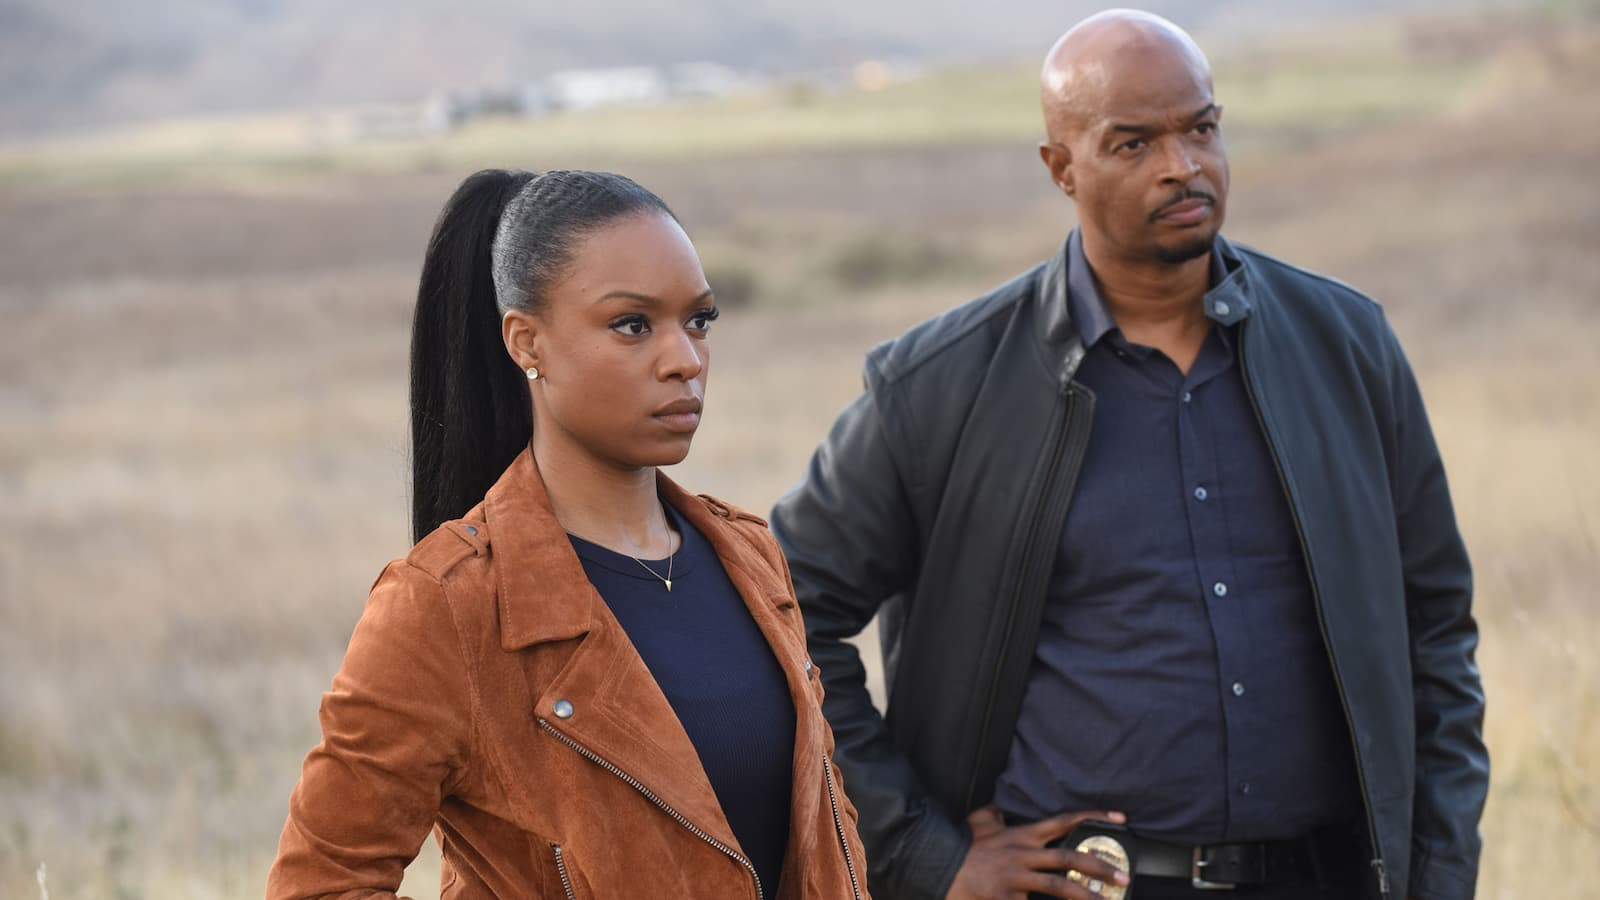 lethal-weapon/sesong-3/episode-13